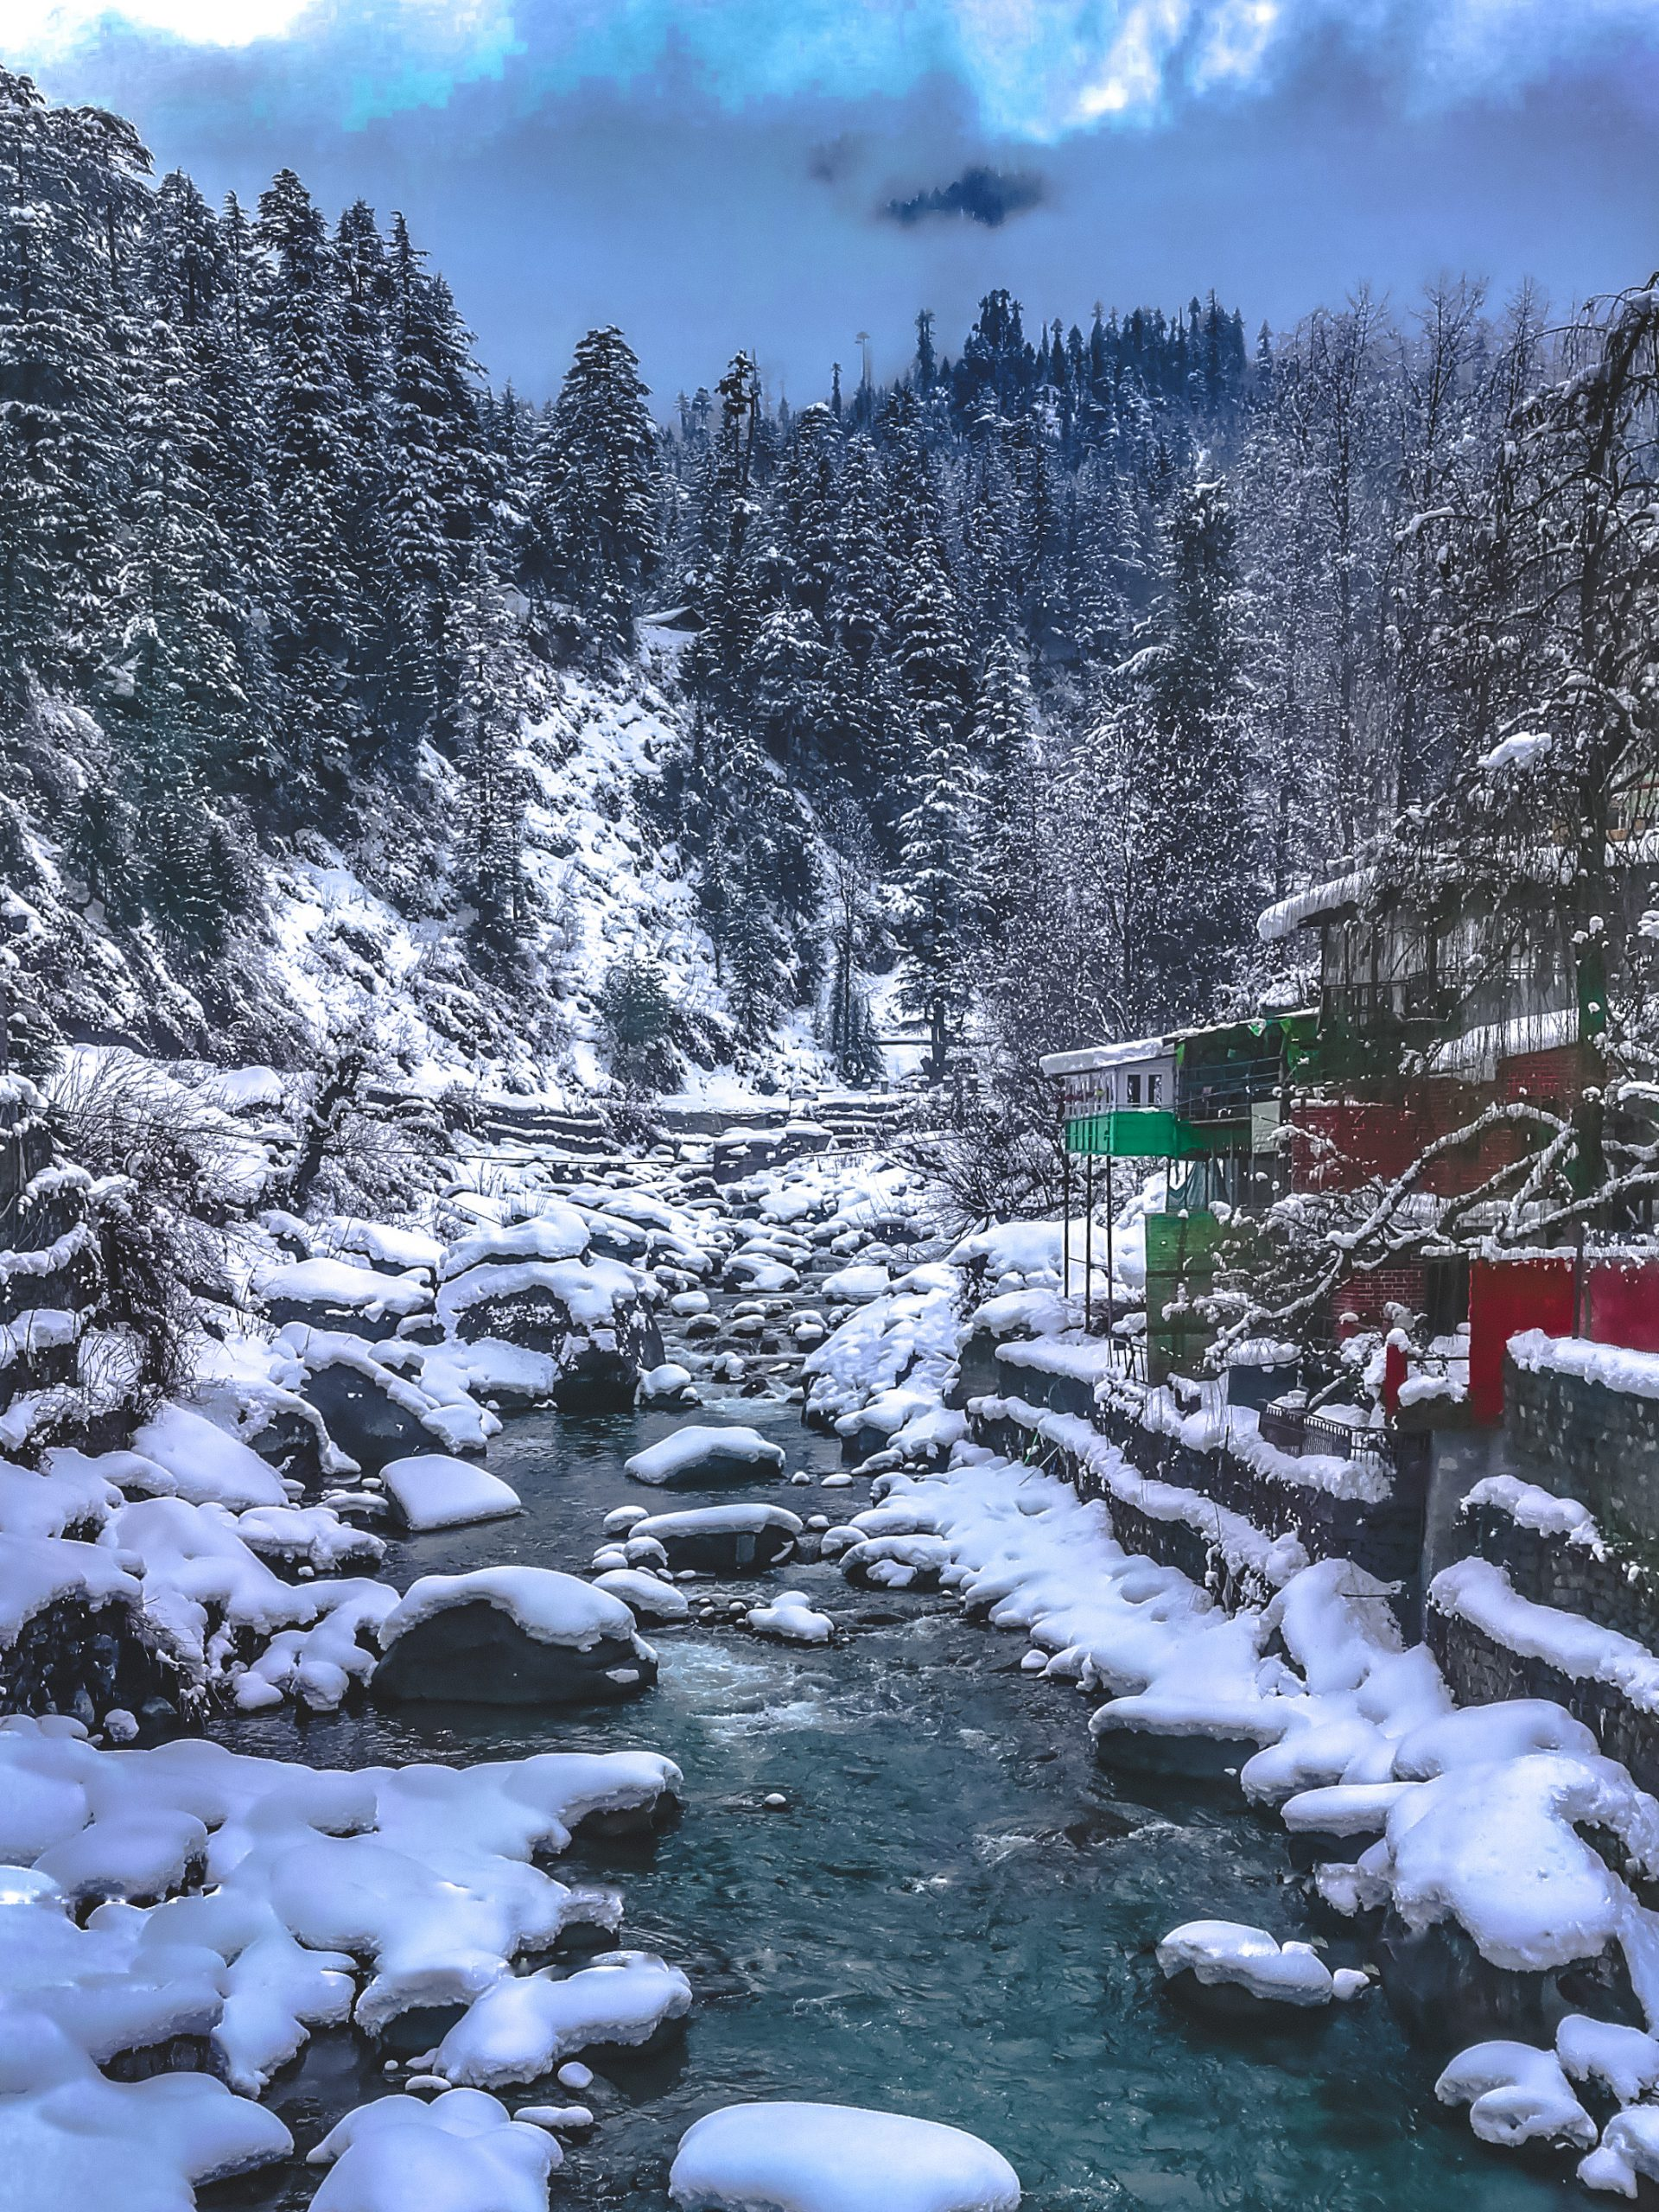 Snow in a Himalayan Area